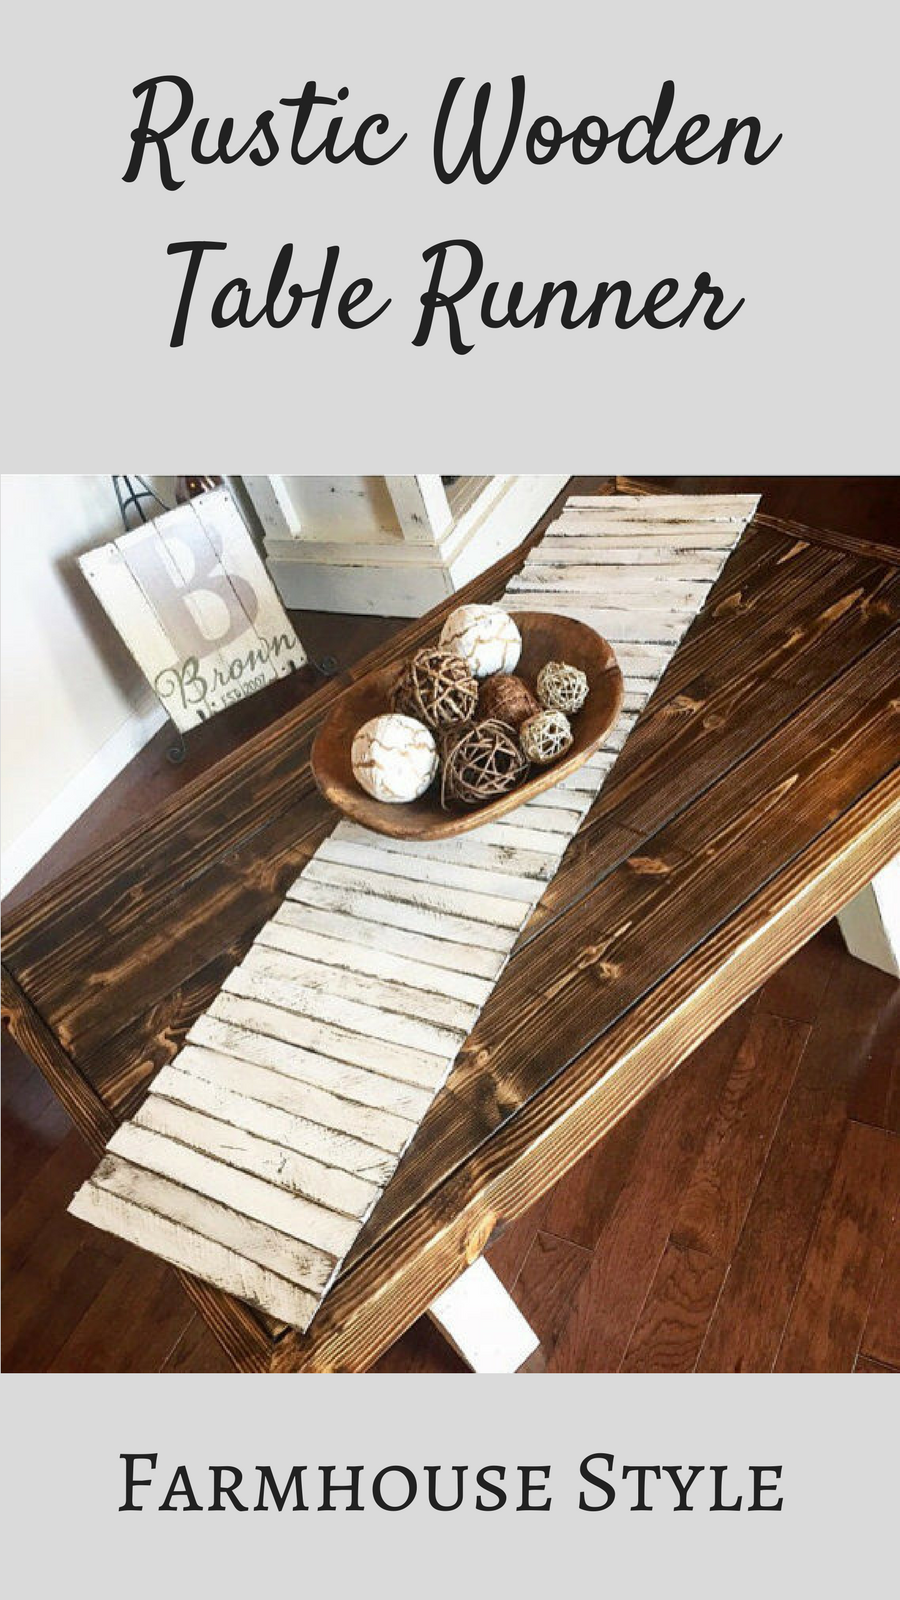 This Rustic Wooden Table Runner Would Be Perfect On A Farmhouse Table  #farmhouse #ad #tablerunner #table #homedecor #kitchen #diningroom  #fixerupper #wood # ...